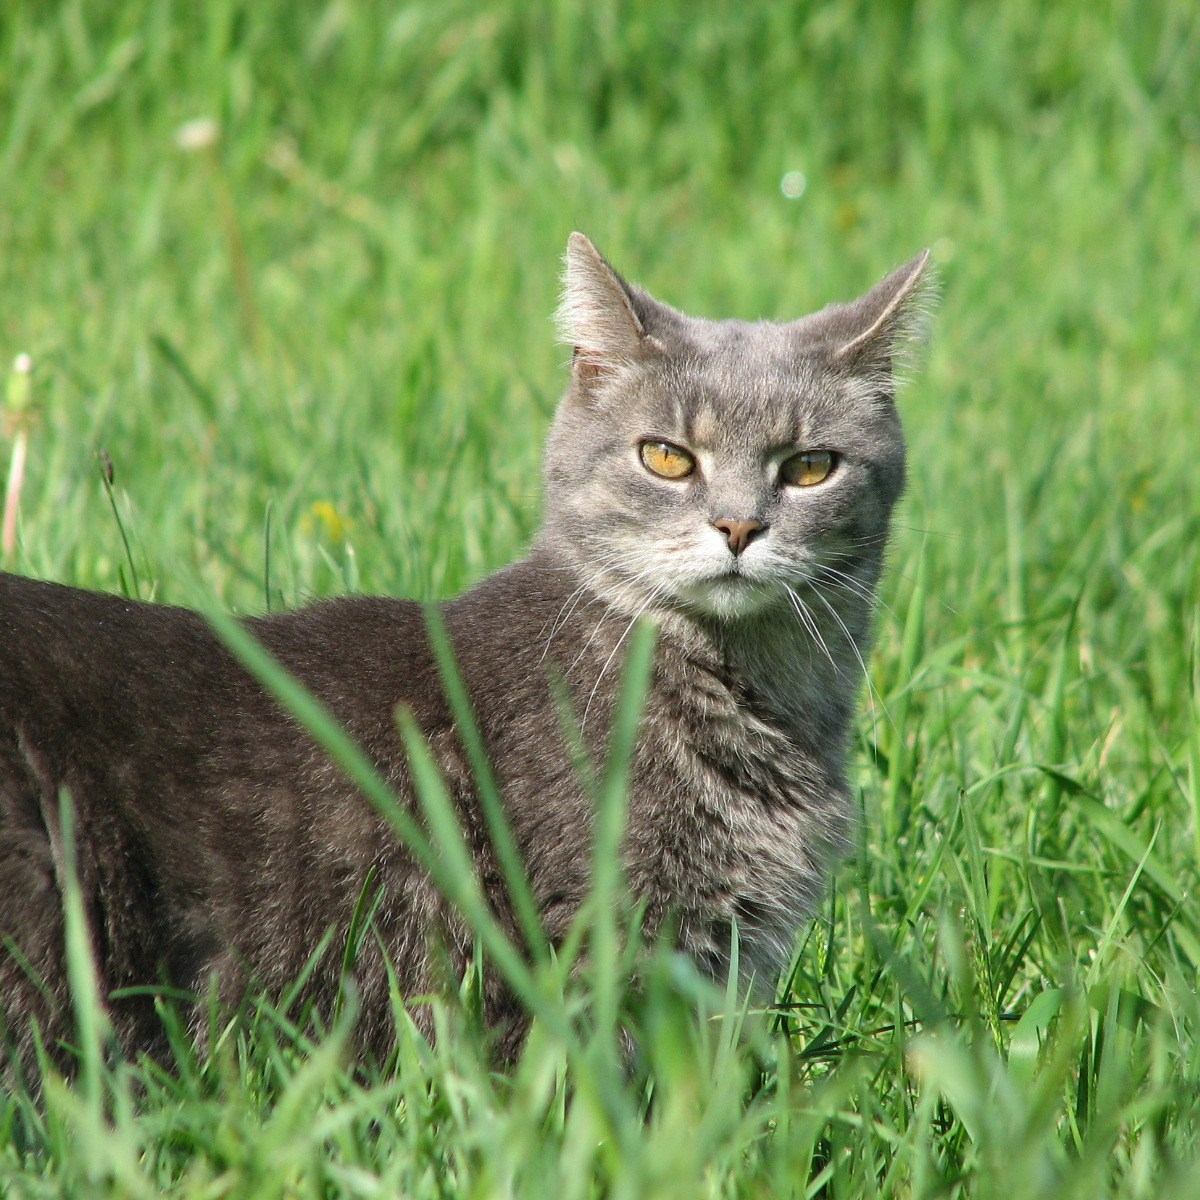 A gray cat with yellow eyes stands in a meadow with ears pointed